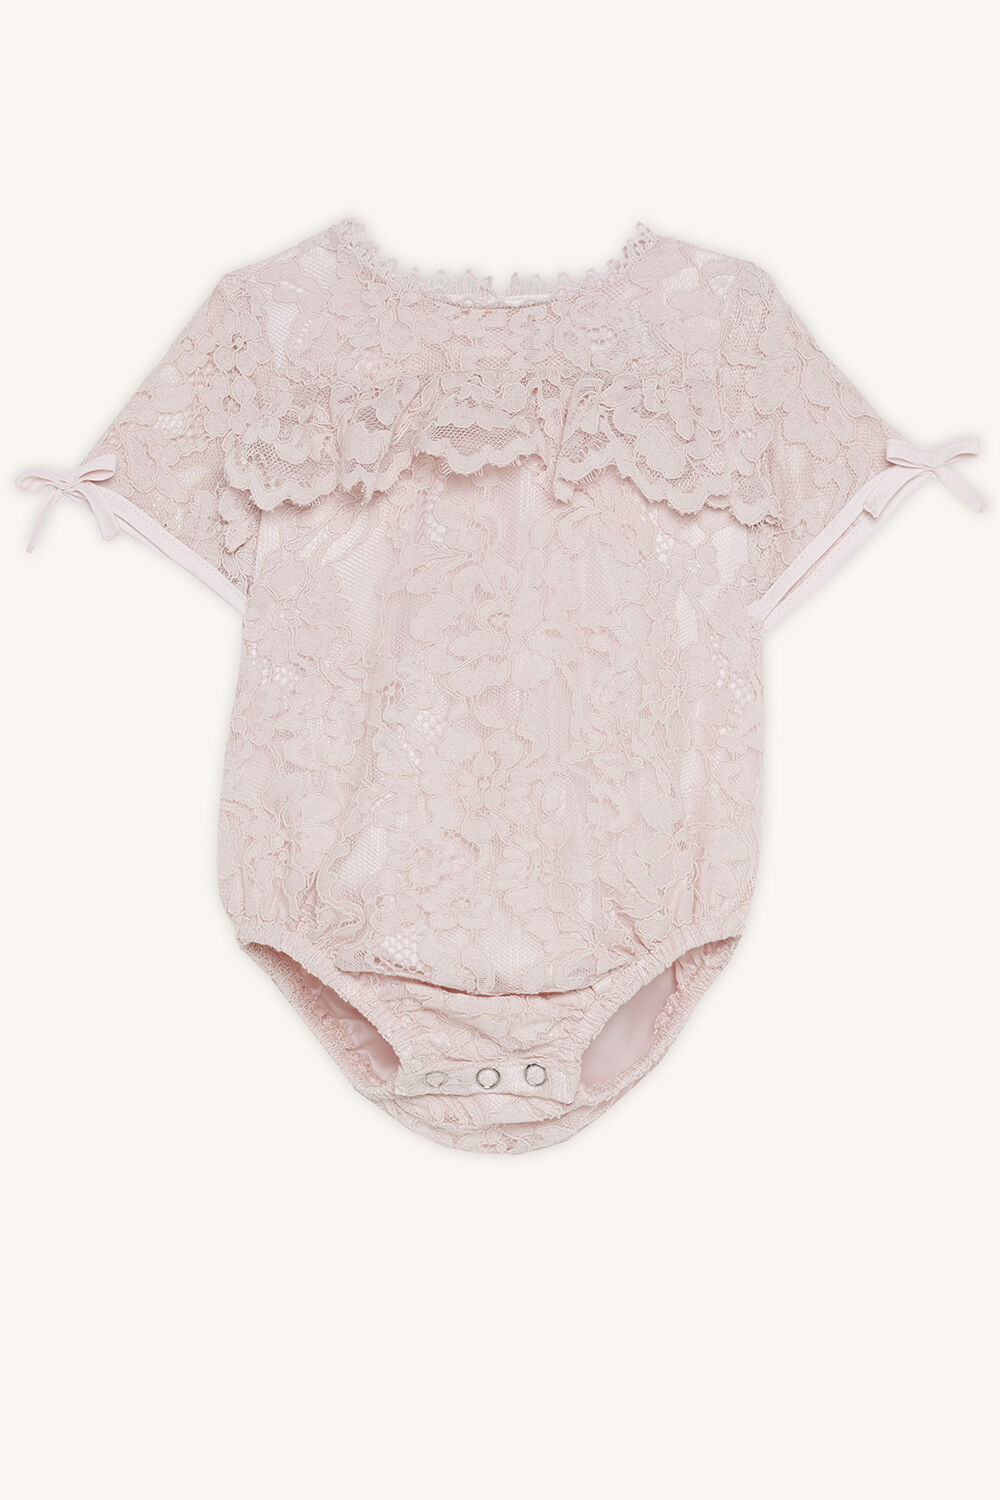 MILLY LACE GROW in colour PRIMROSE PINK